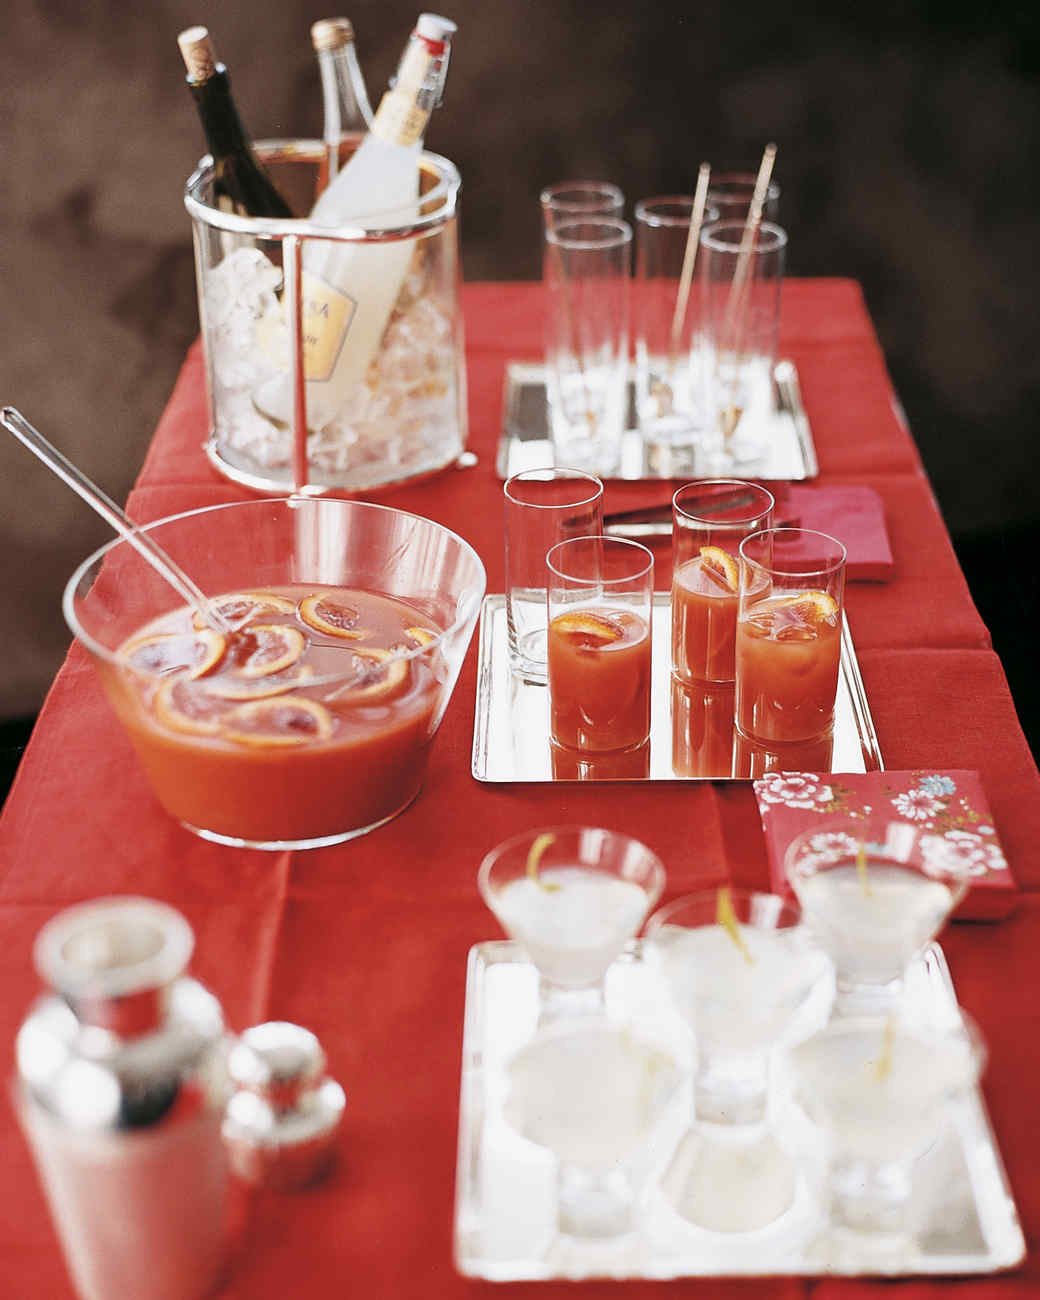 These holiday cocktails will keep the party going from Christmas until New Year's.